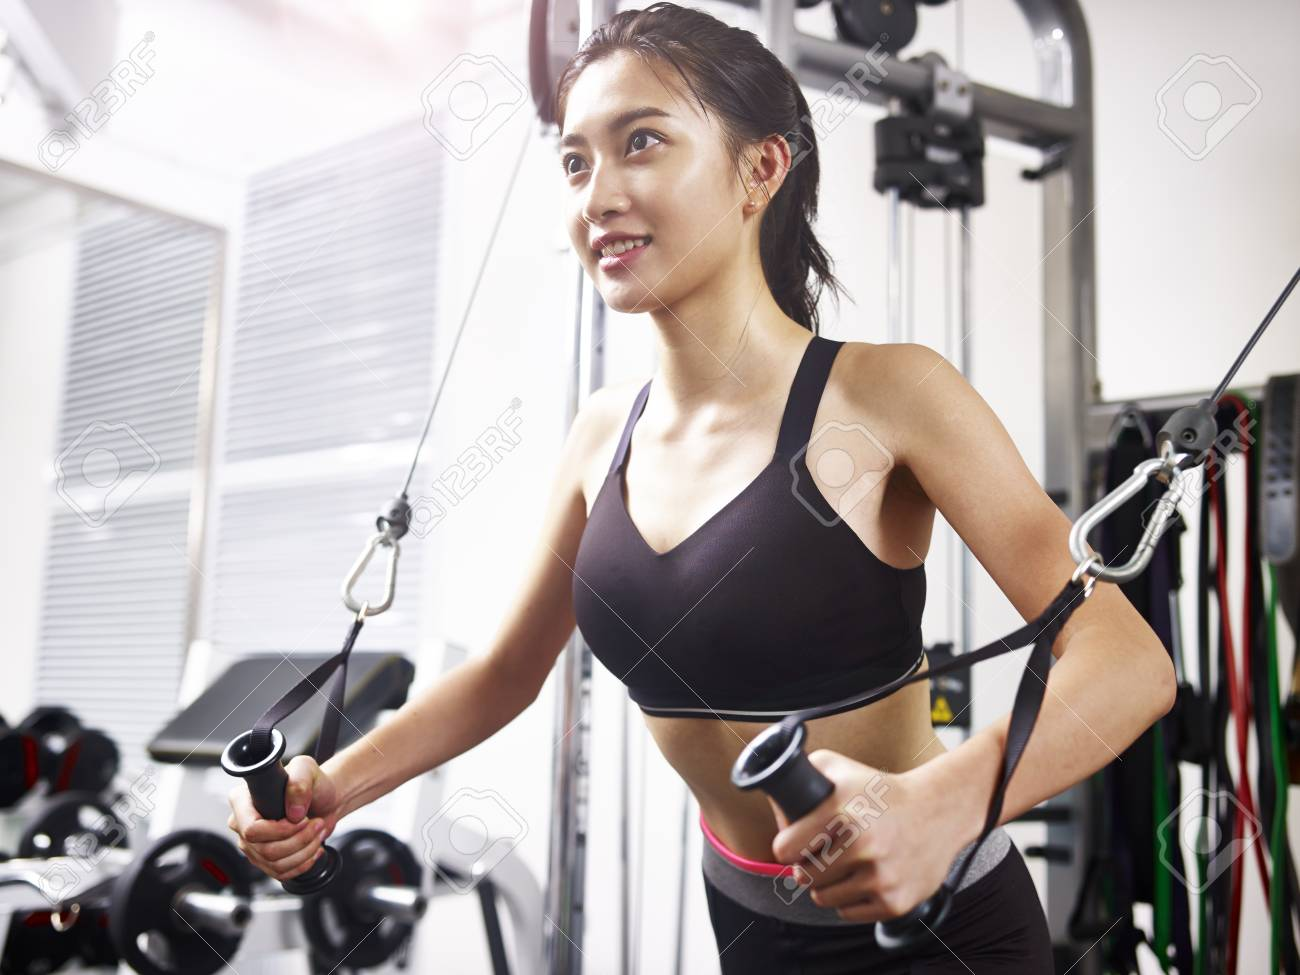 young asian woman working out in gym using exercising equipment. - 89328921